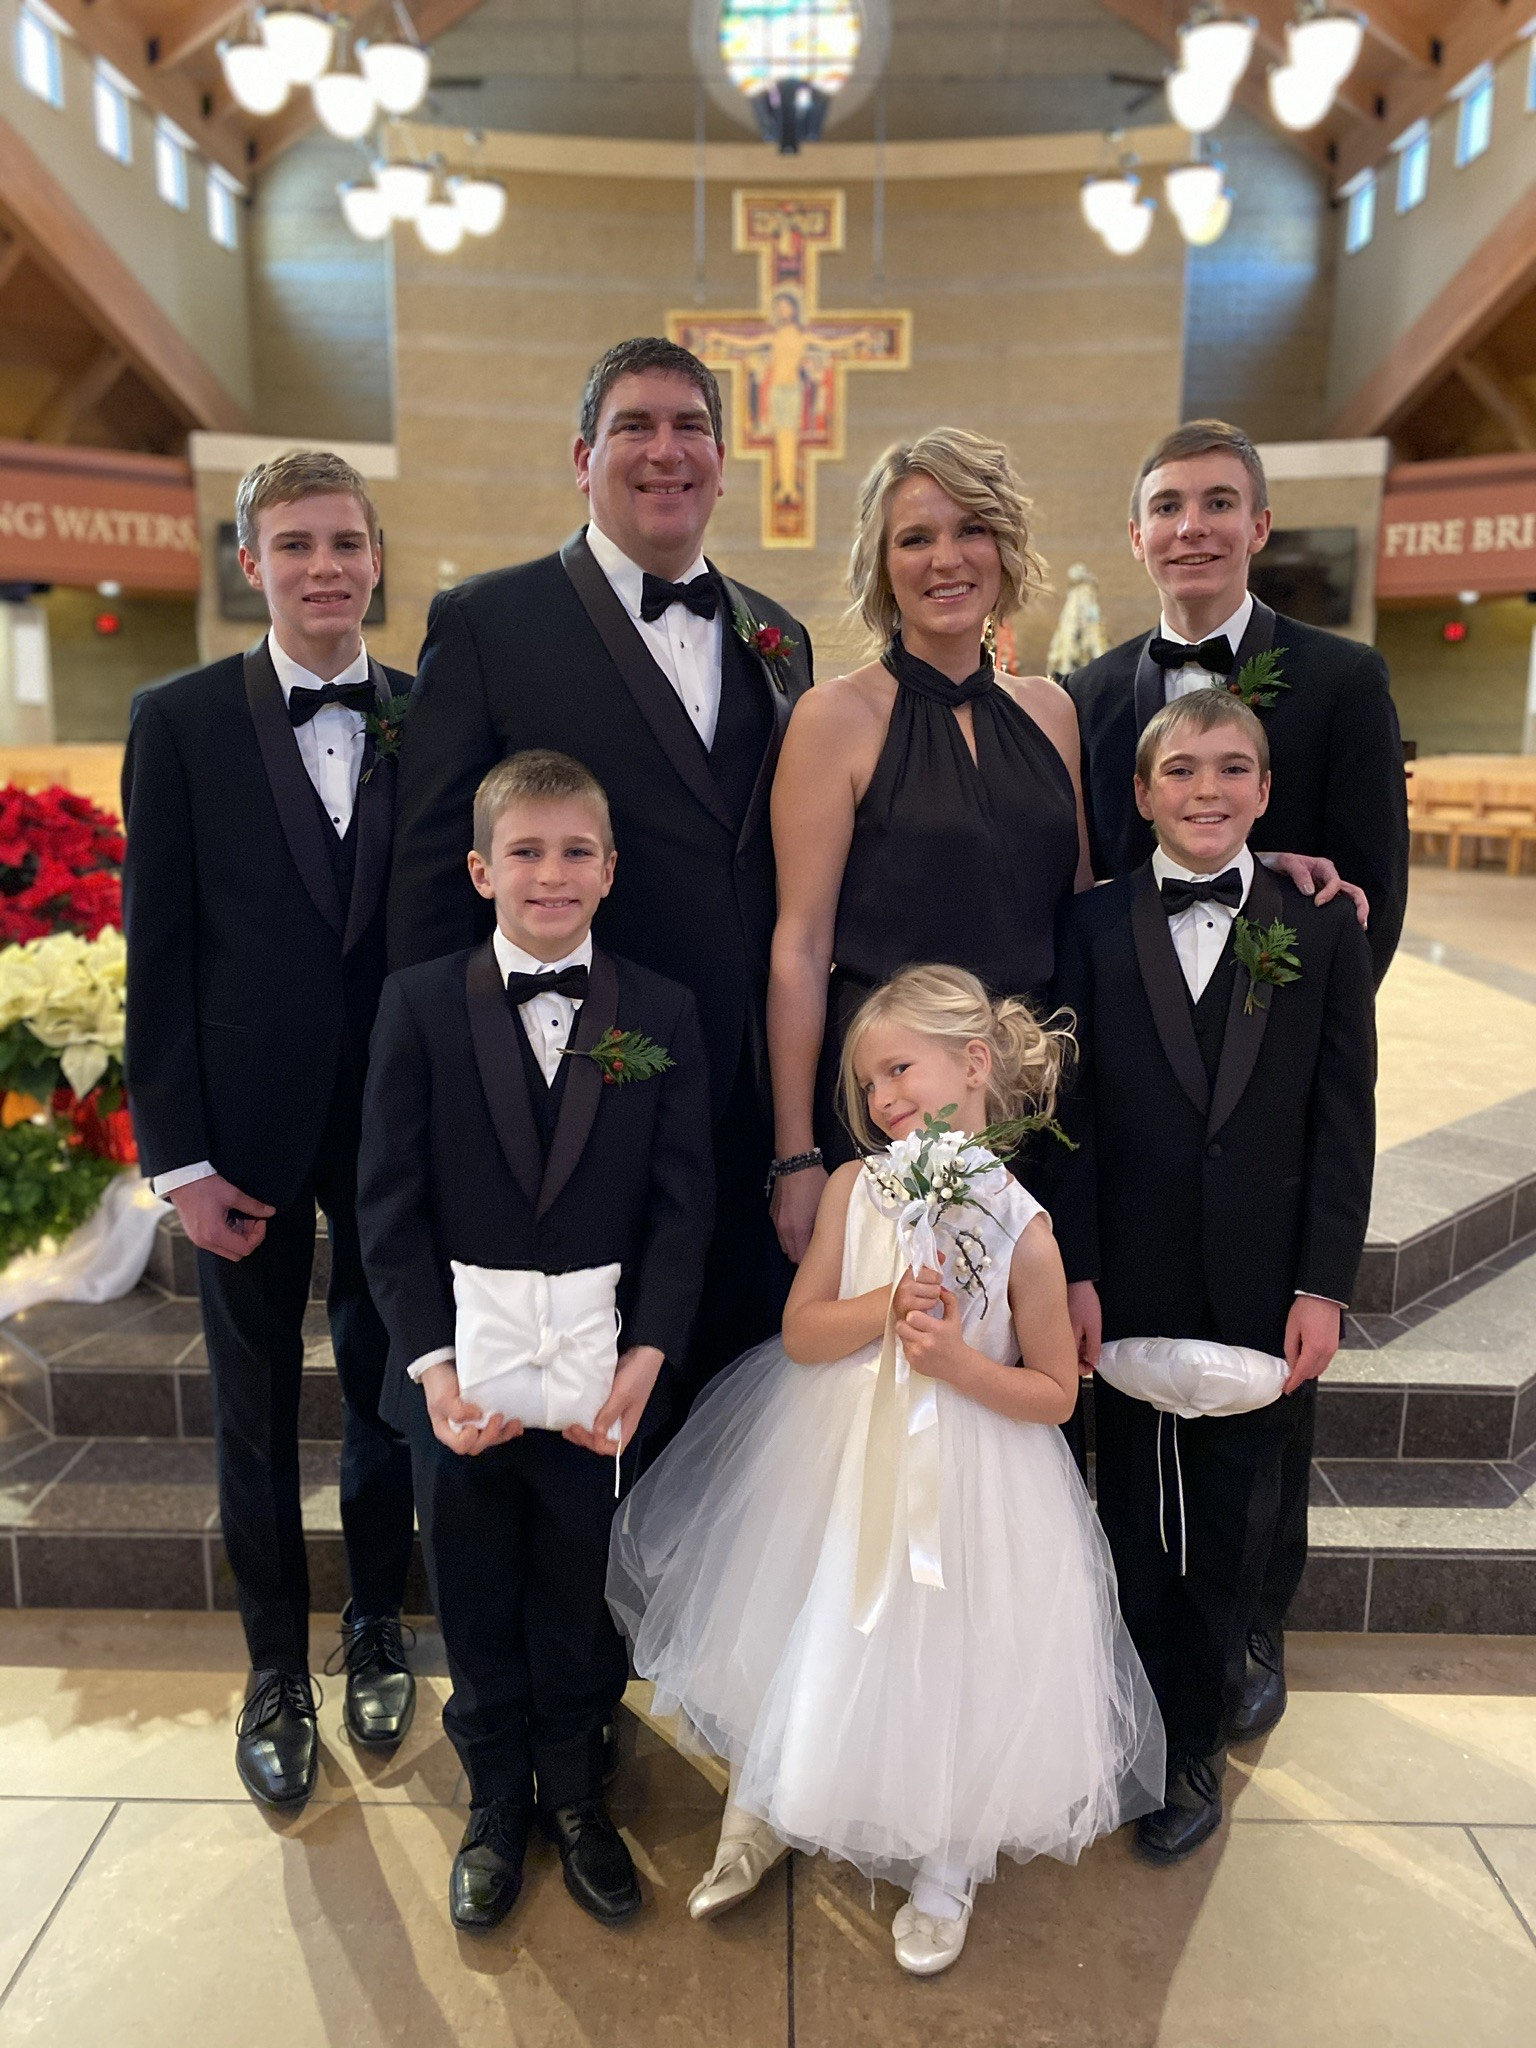 The McGuire Family